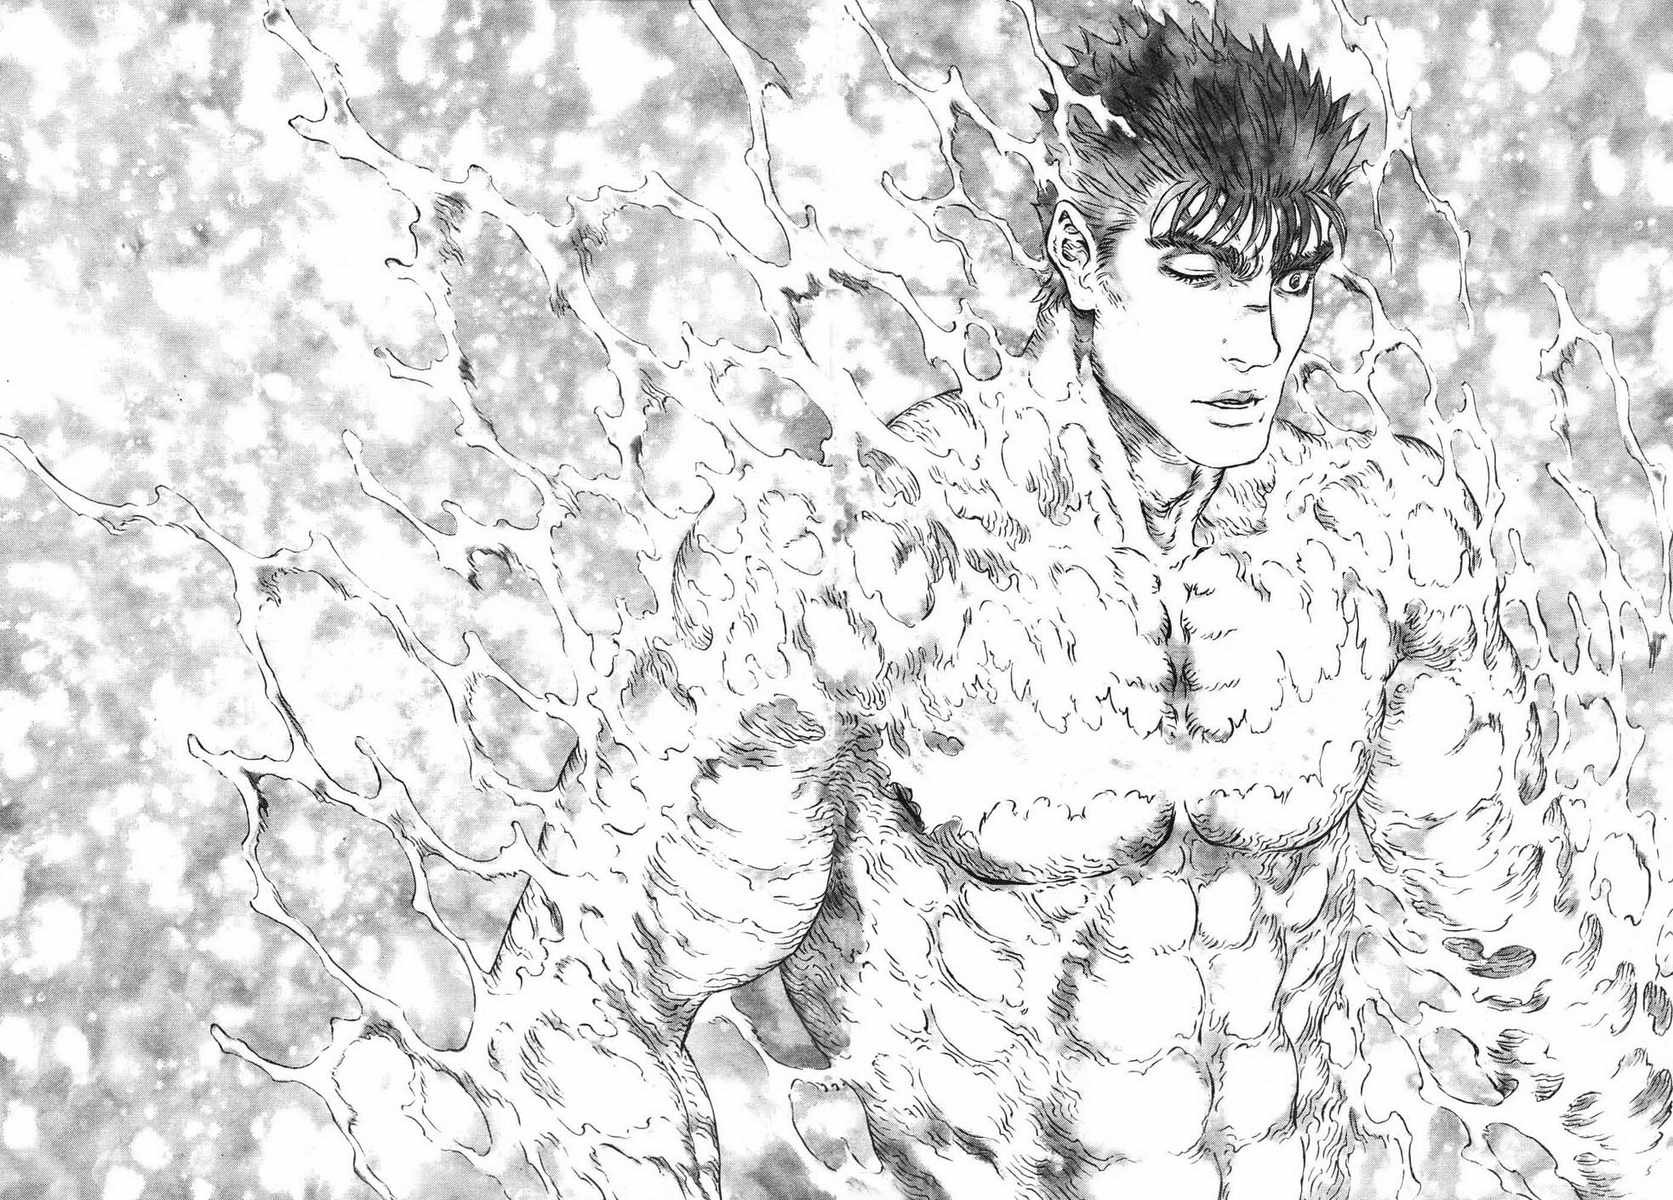 berserk HD Wallpaper